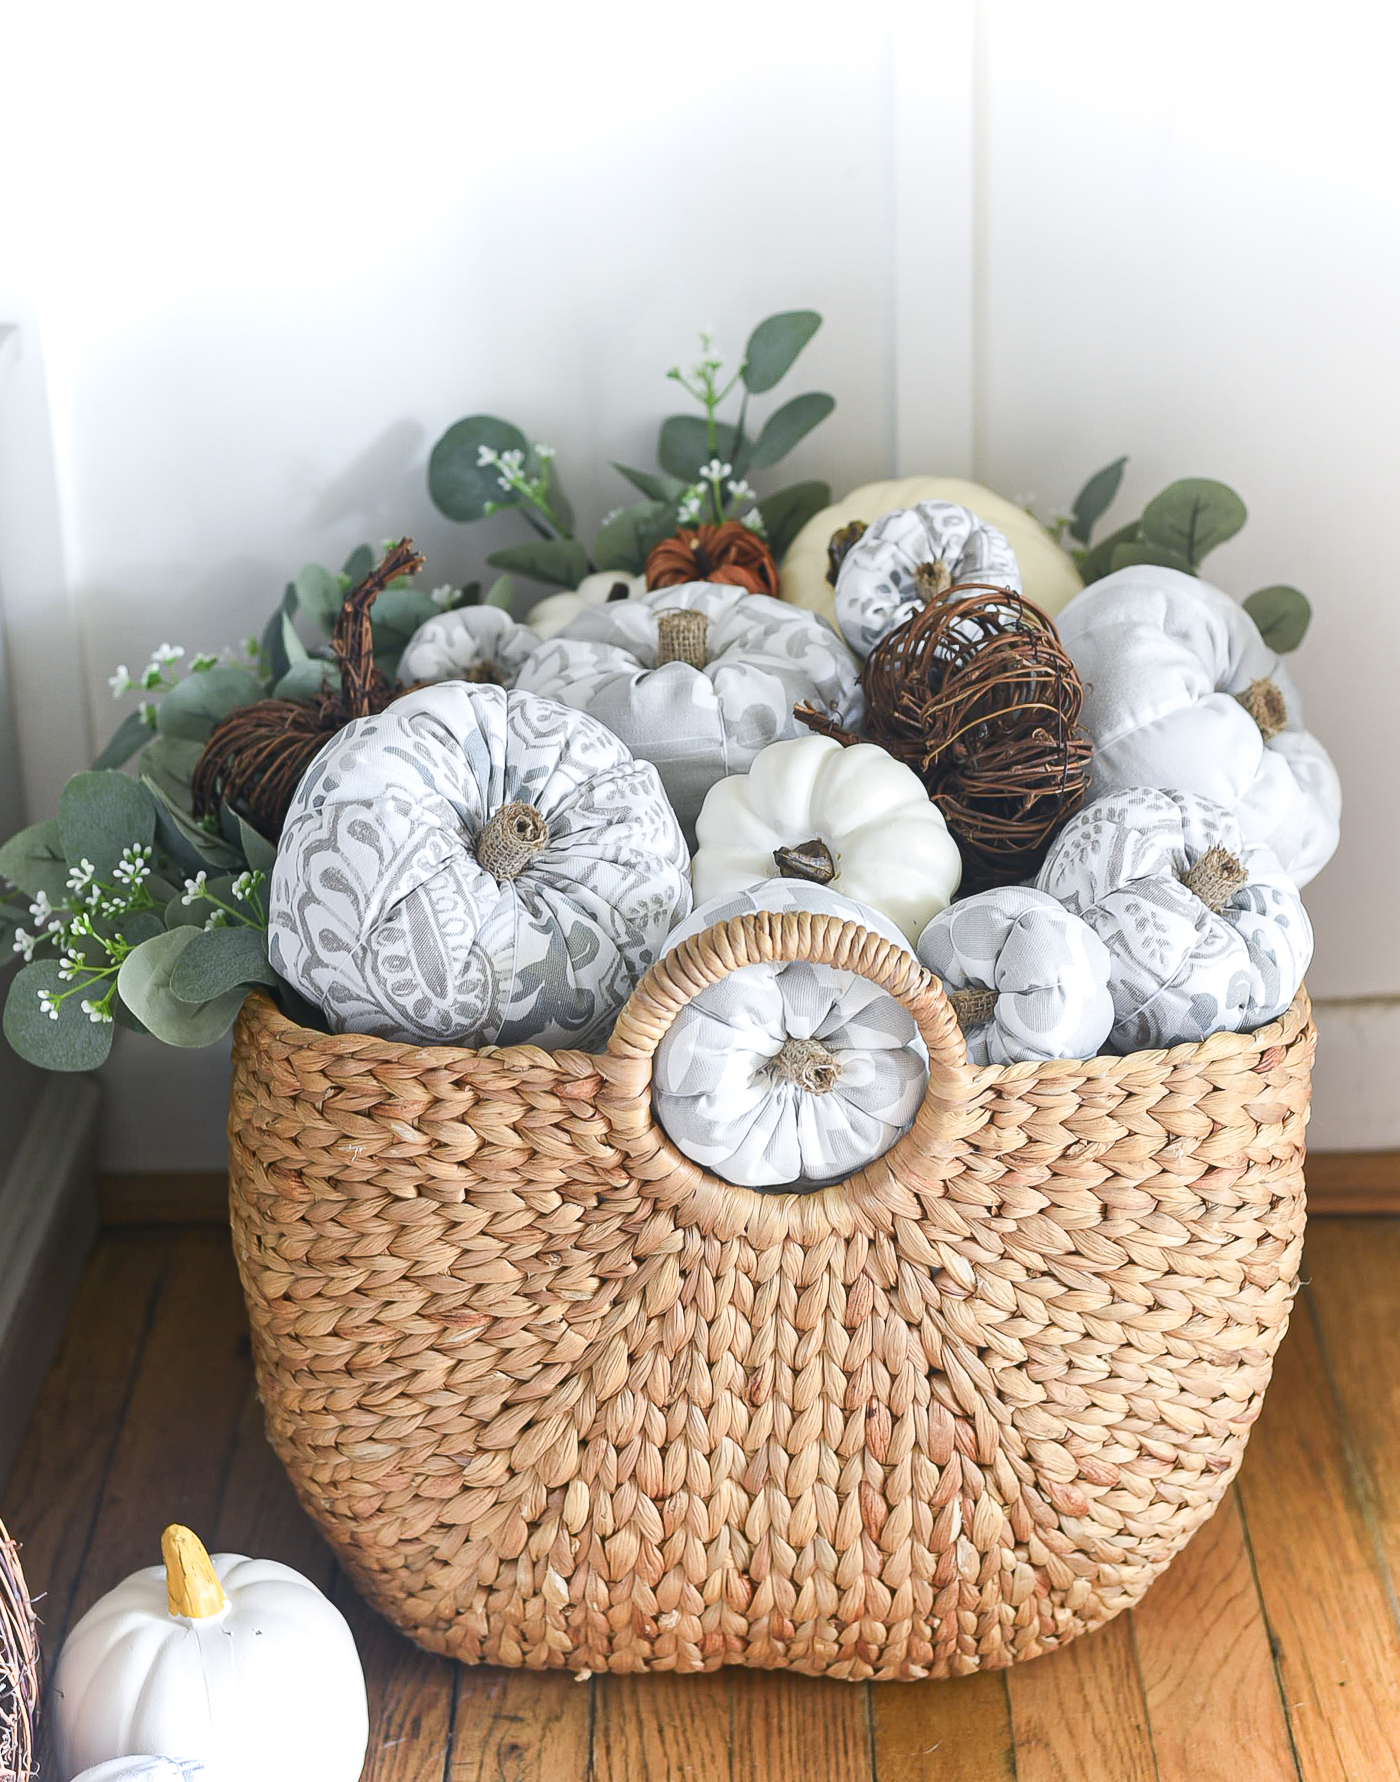 How To Make Fabric Stuffed Pumpkins - Gray White Greige Fabric Pumpkins DIY